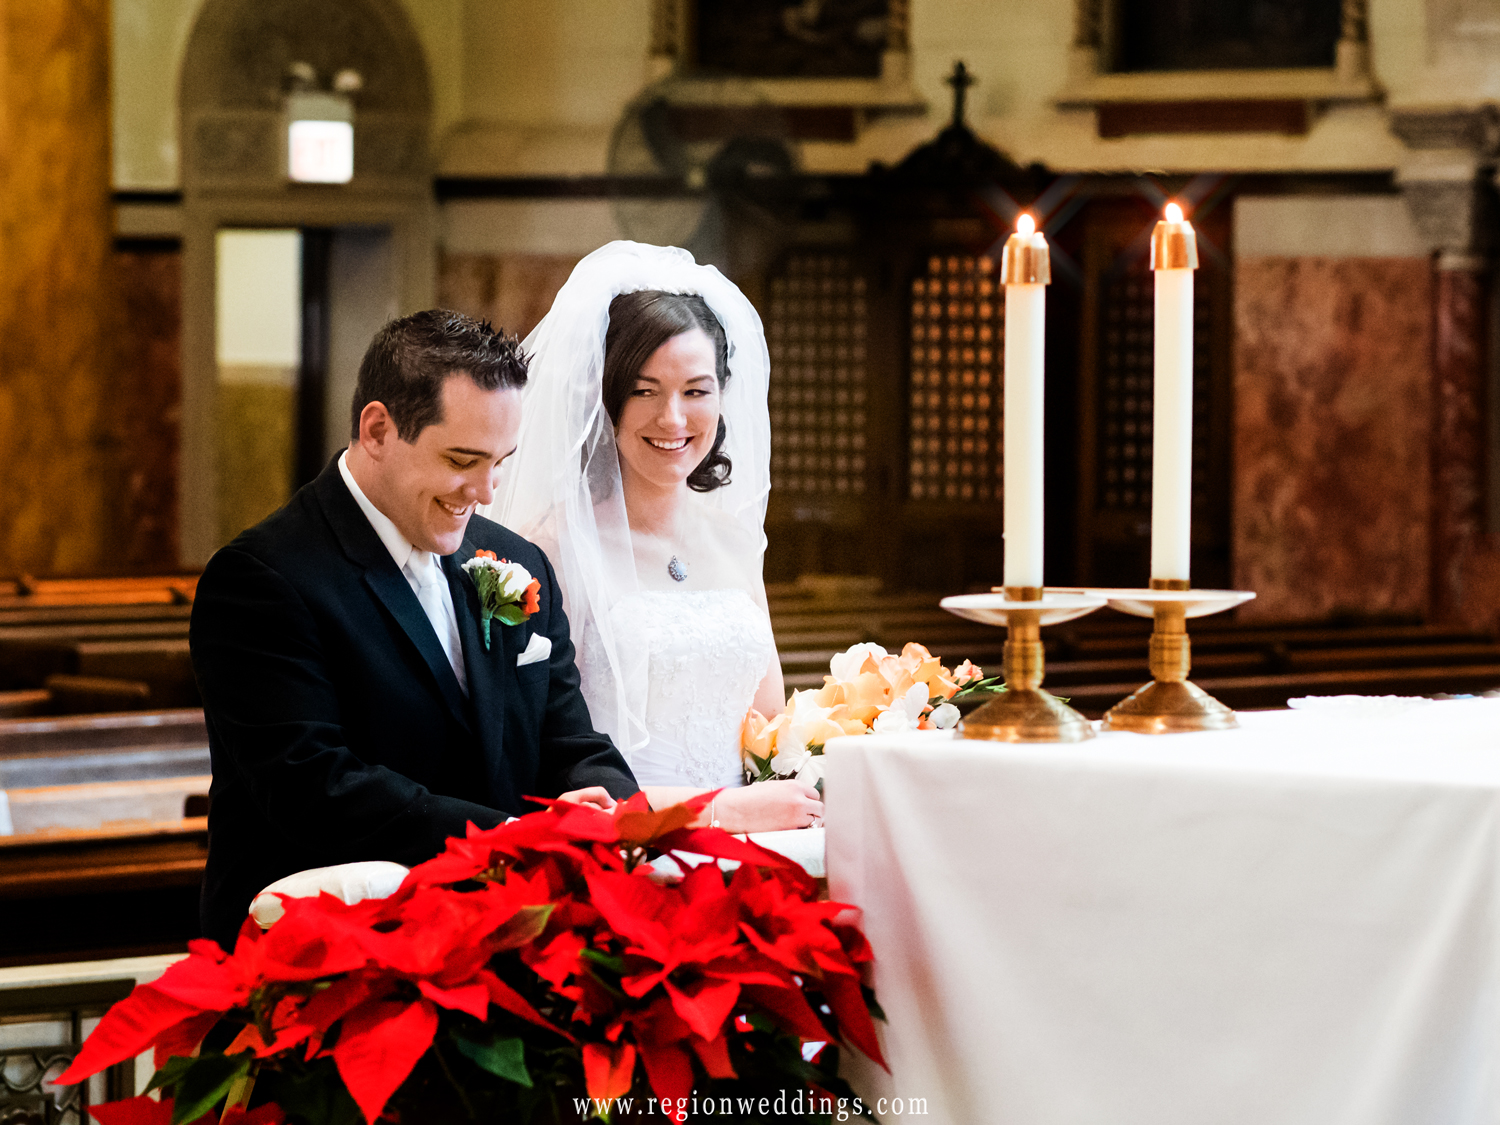 A candid moment between the bride and groom at the altar of Saint Andrew the Apostle Parish.